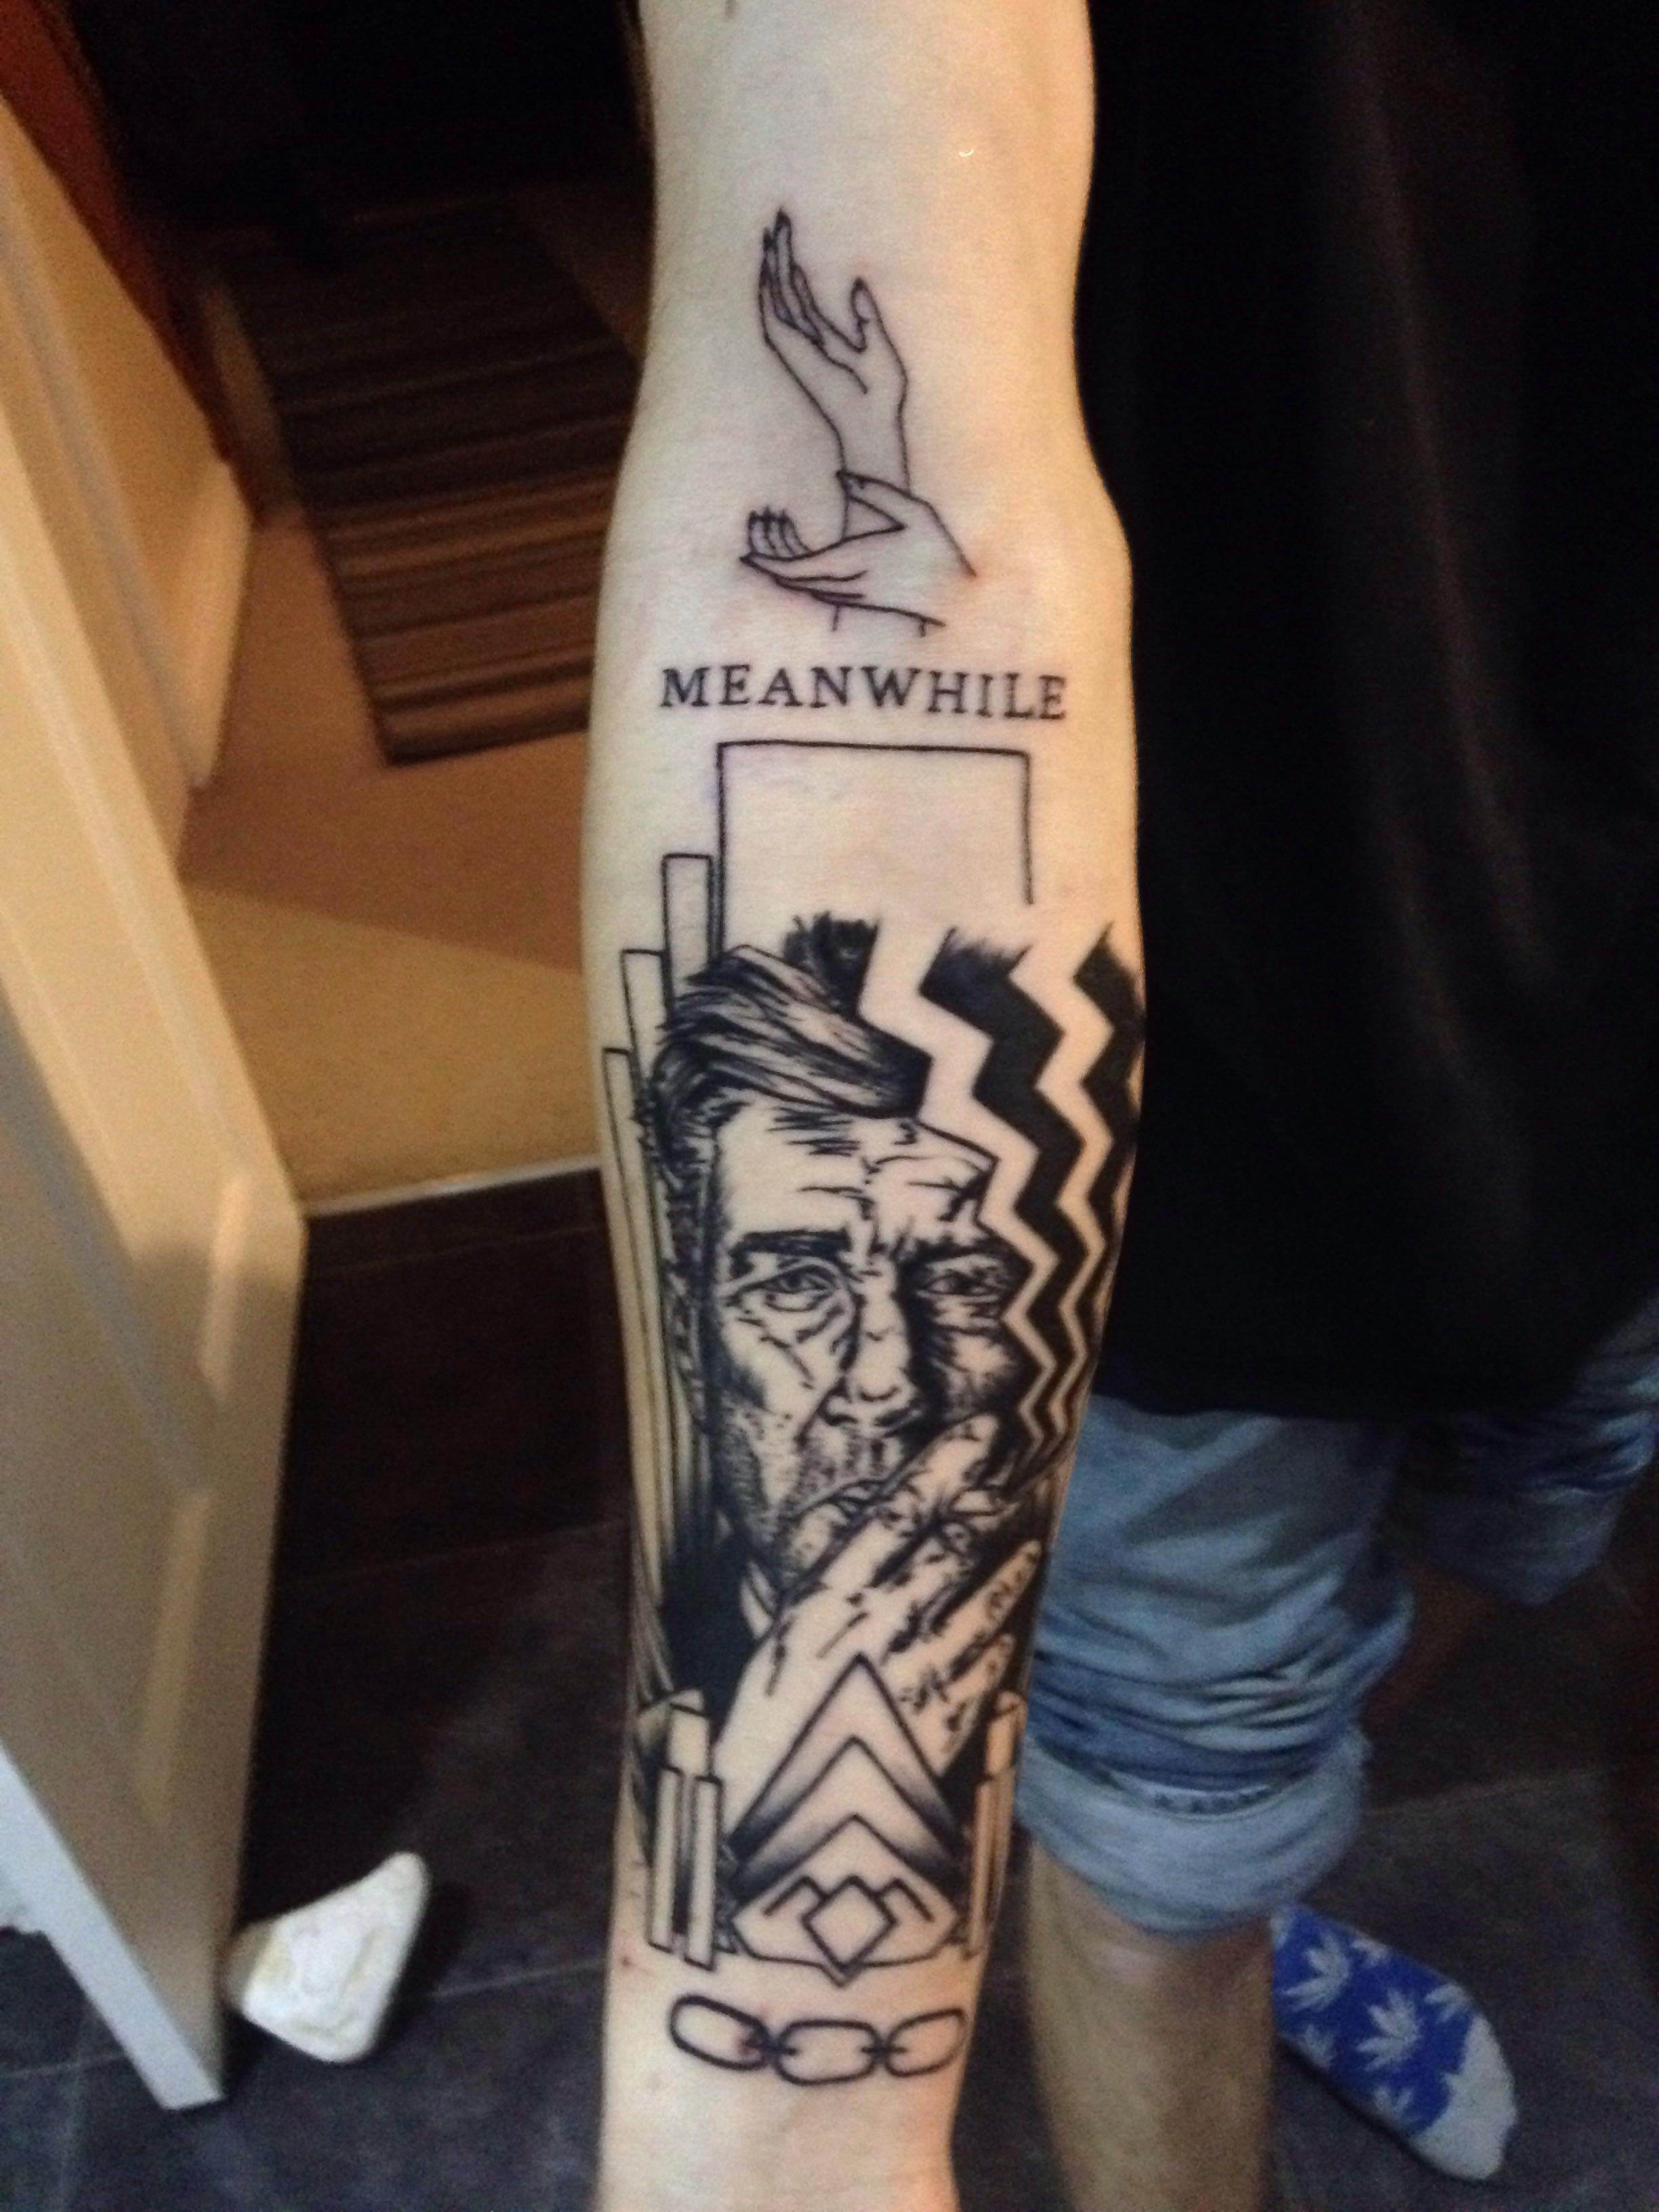 David Lynch Twin Peaks Tattoo Along With Bioshock Chains Ideas And Designs